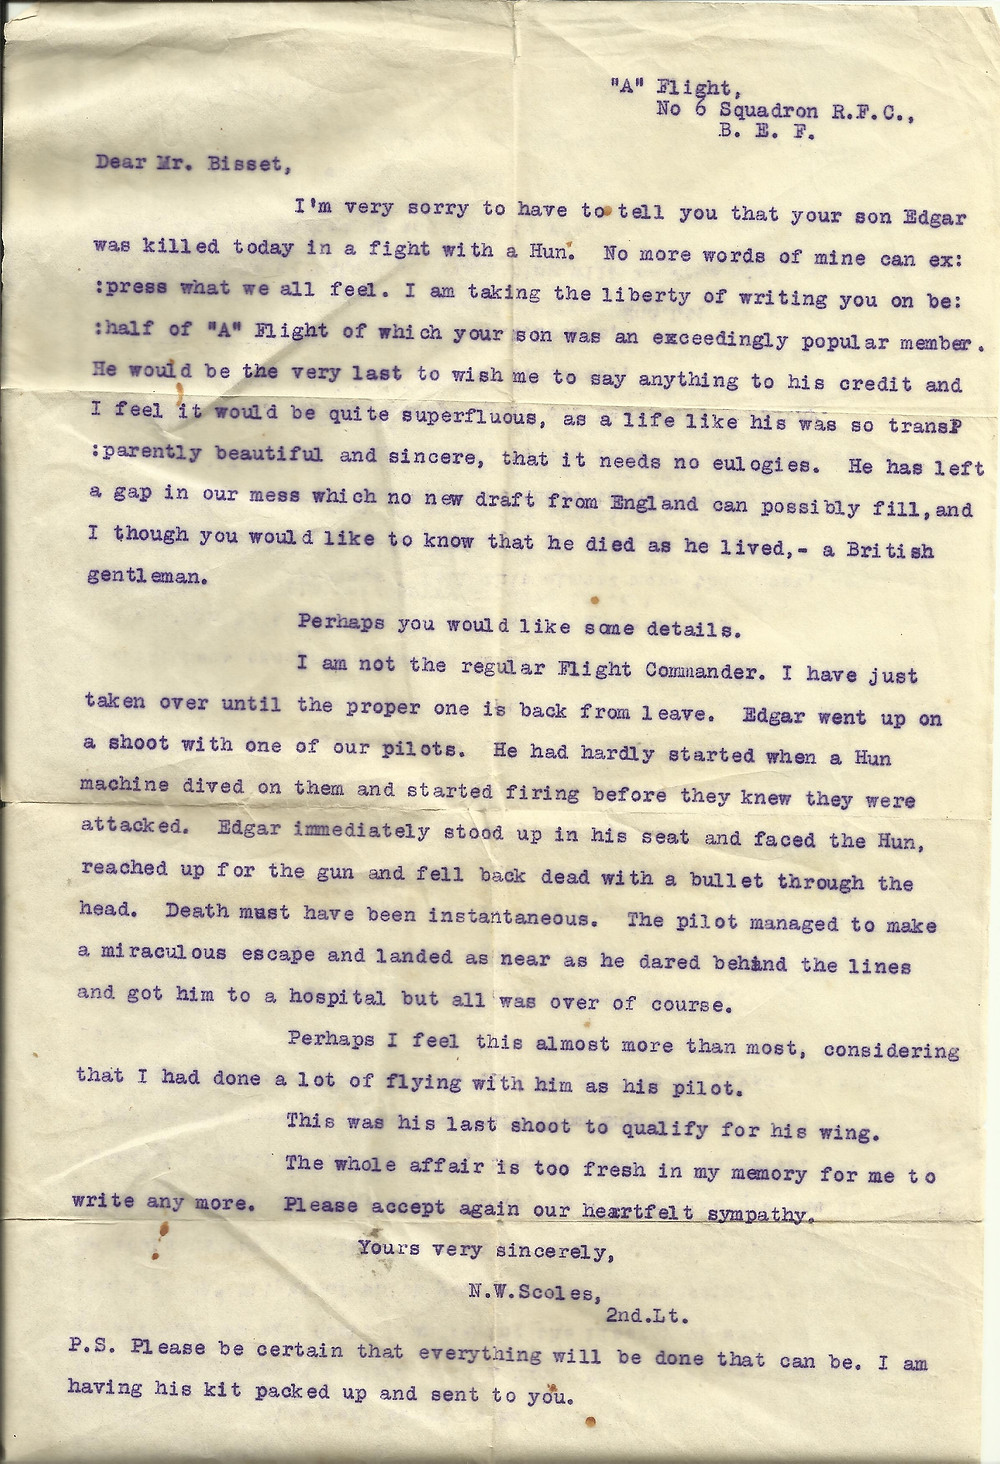 Notification of death of 2nd Lt James Bissett in January 1917, written by the temporary flight commander of A Flight 6 Squadron, 2nd Lt N W Scoles